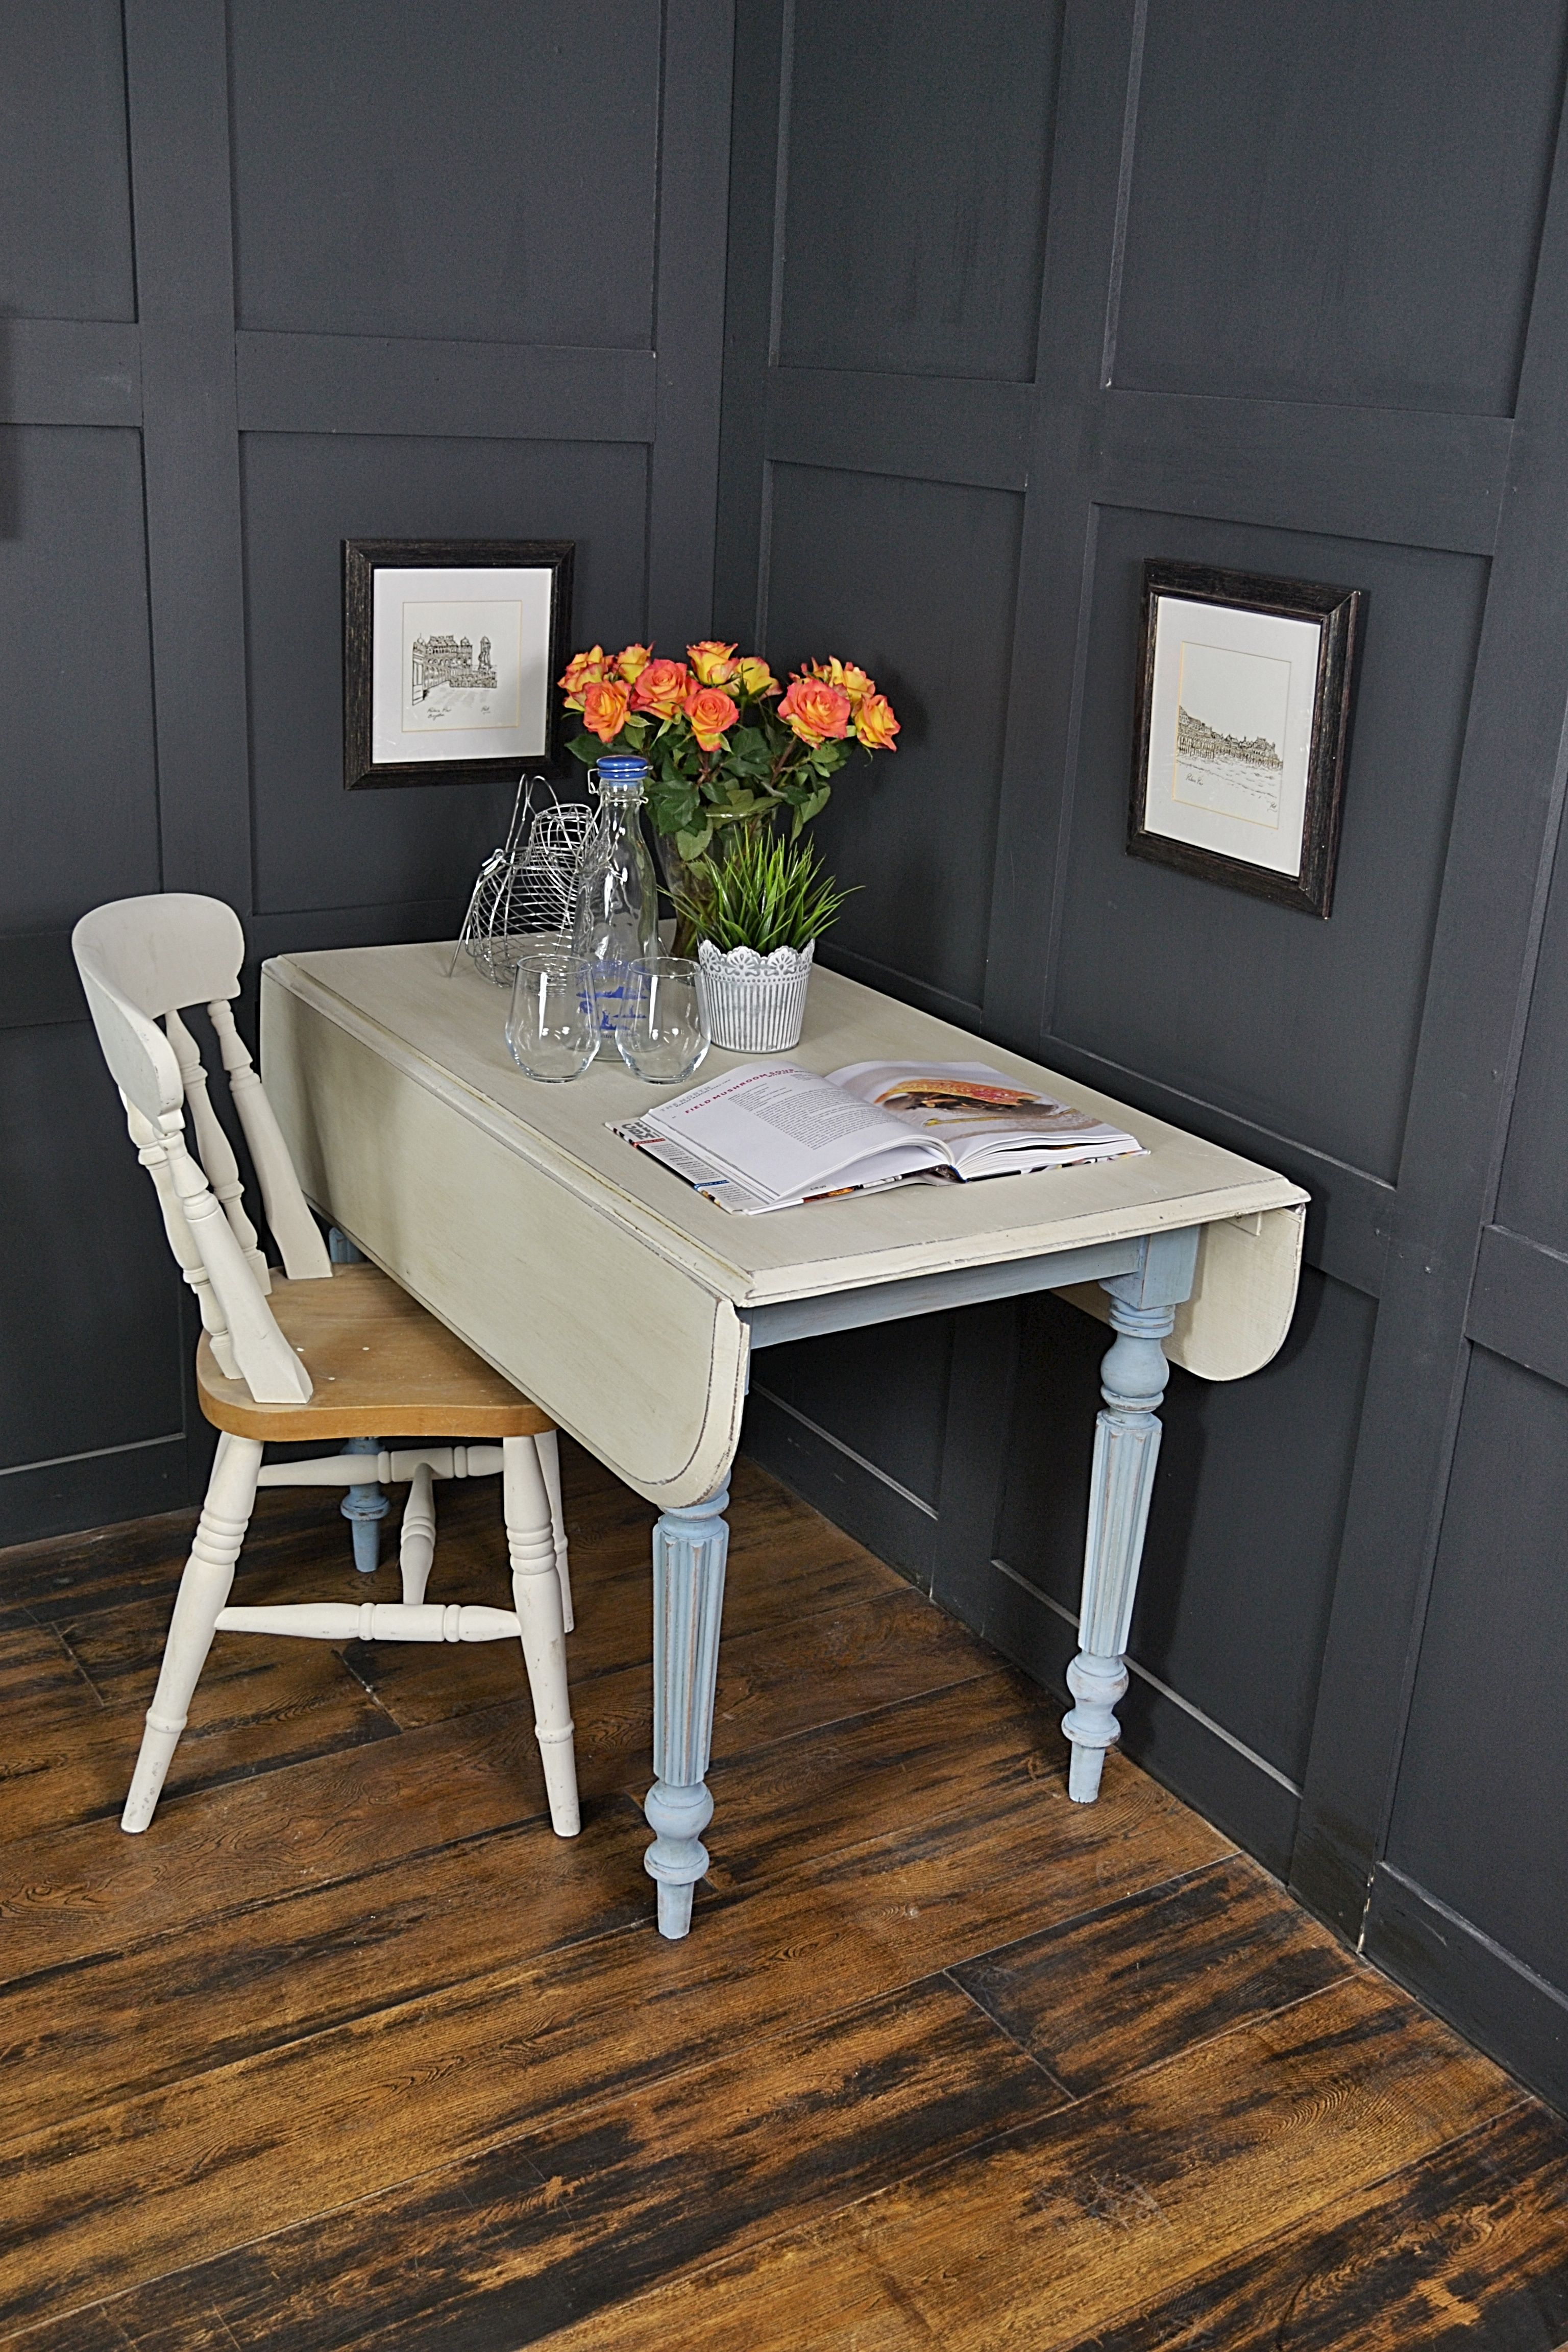 Painted pine farmhouse kitchen table by distressed but not forsaken - When Leaves Are Extended This Table Can Seat 4 People But Then Drop Down To Easily Store Away We Ve Painted